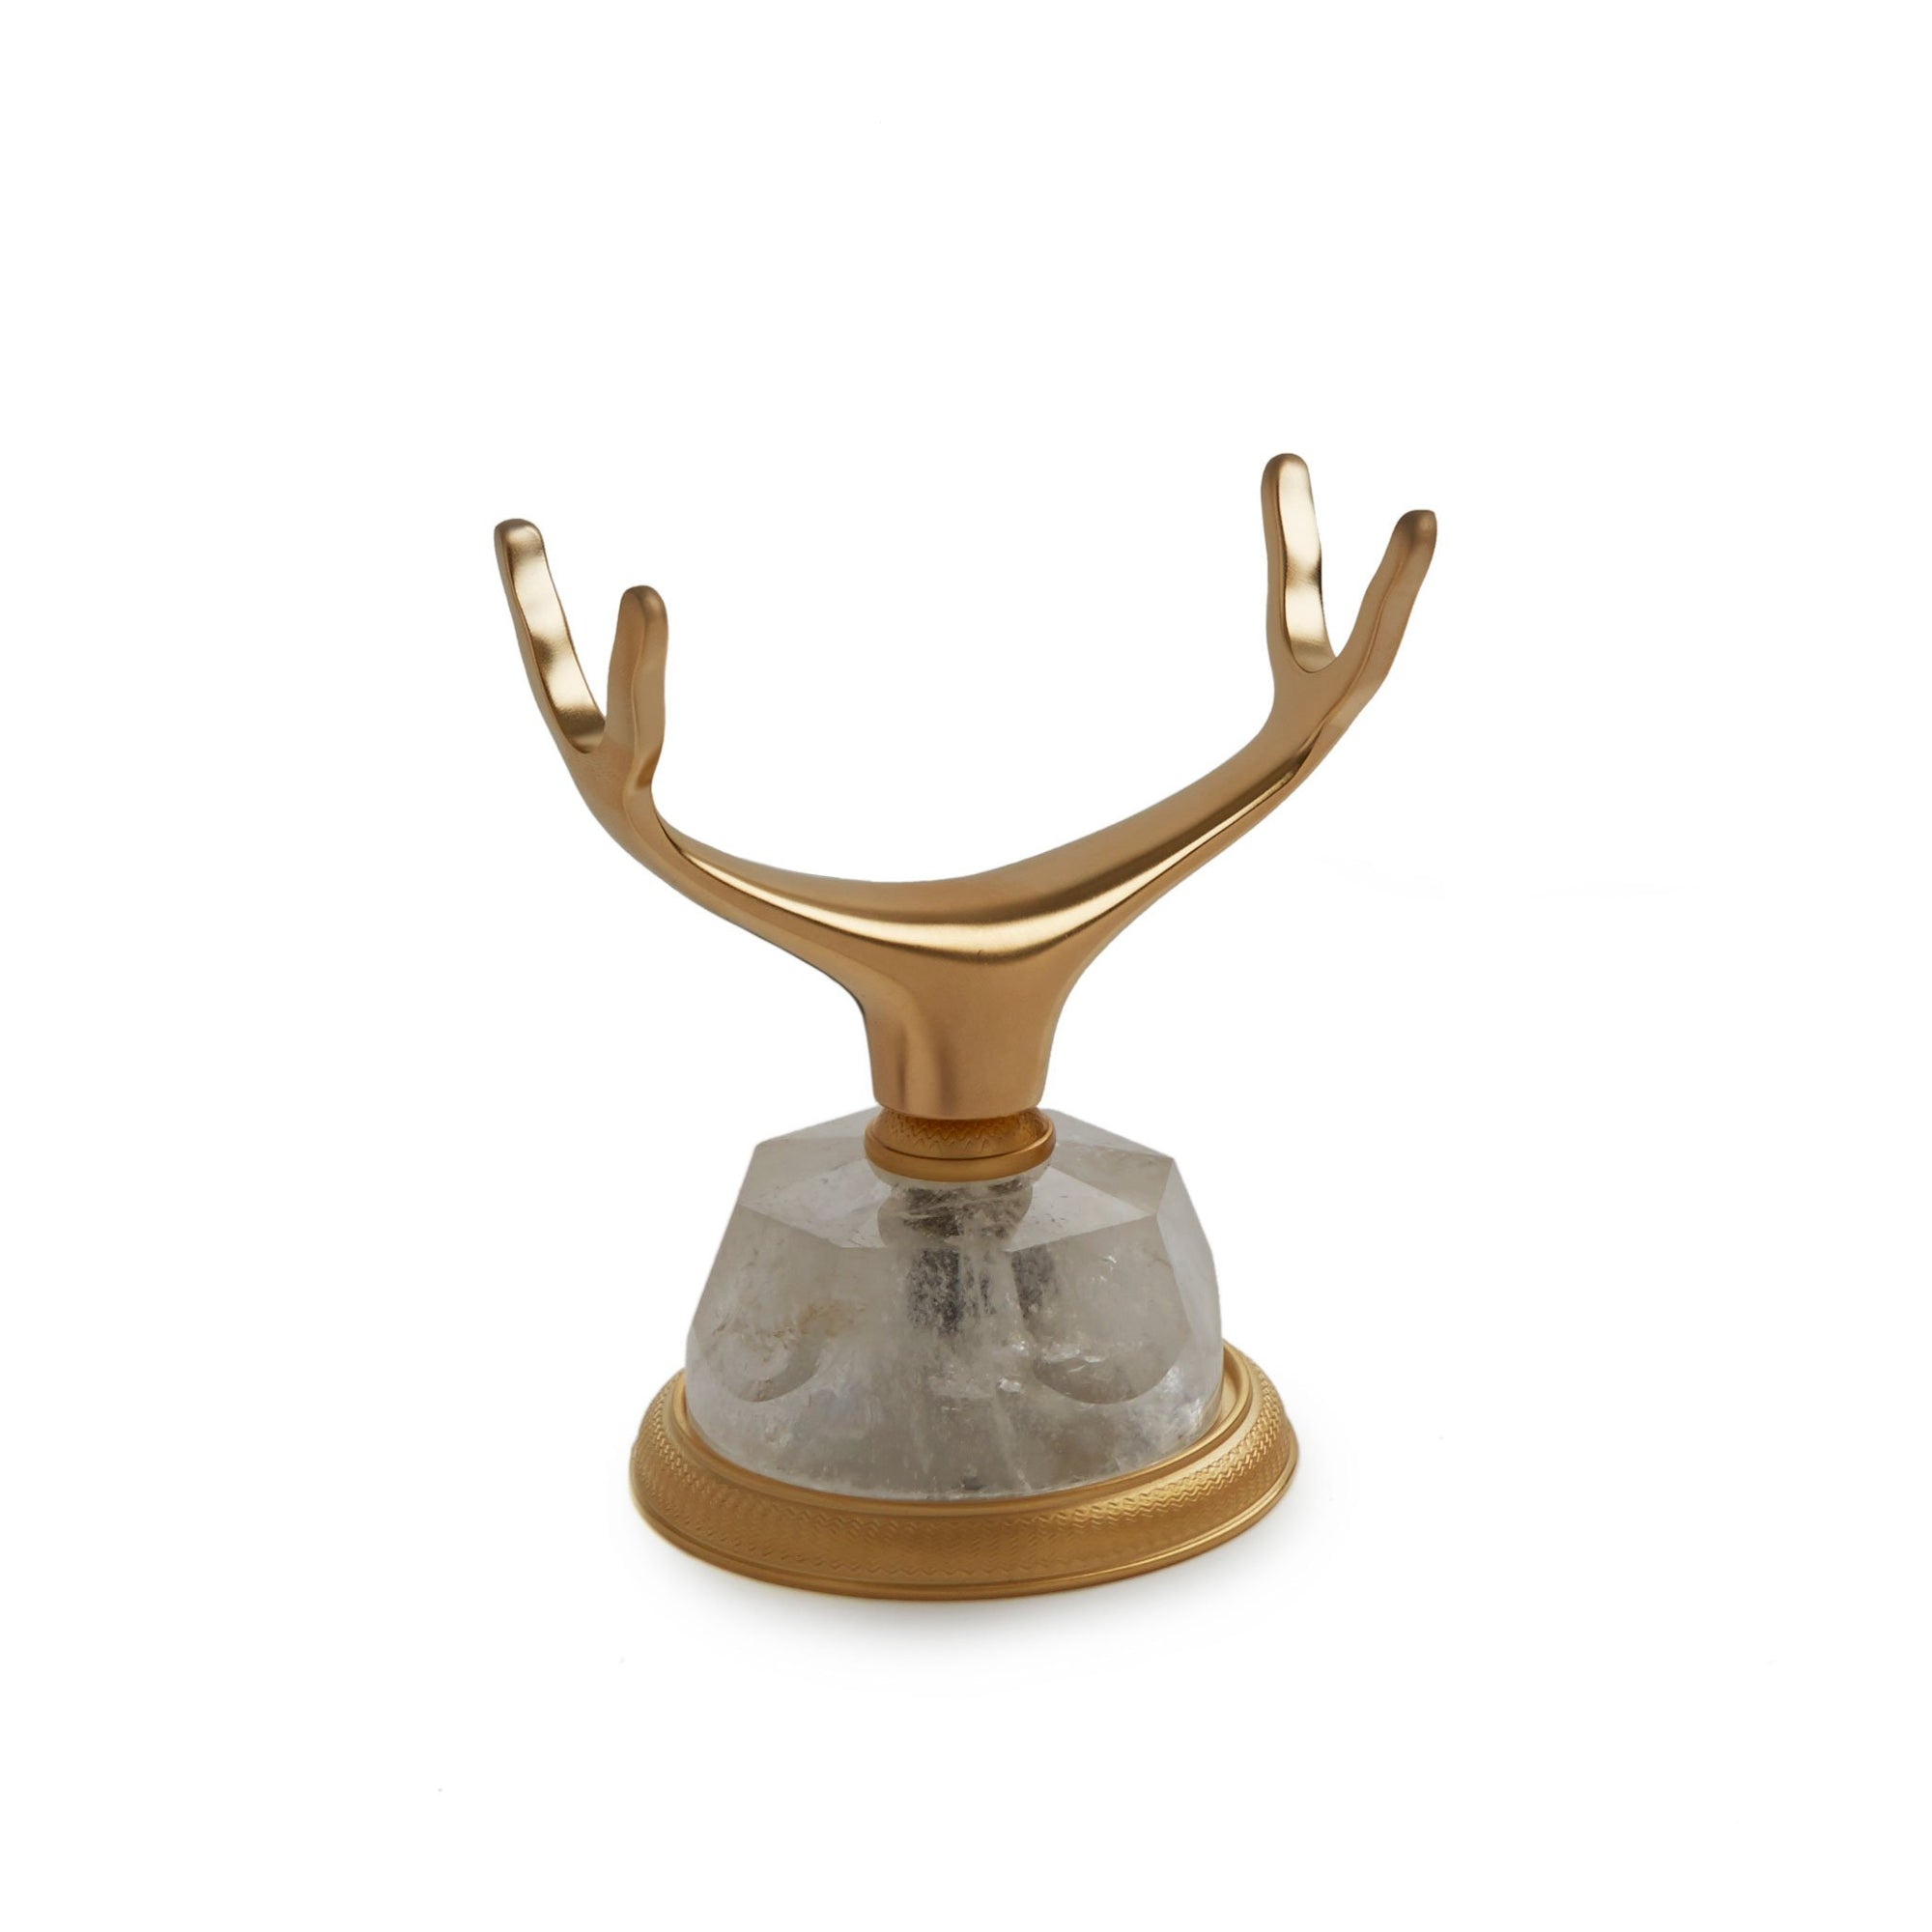 0849DKMT-RKCR-GP Sherle Wagner International Deck Mount Cradle in Gold Plate metal finish with Rock Crystal inserts